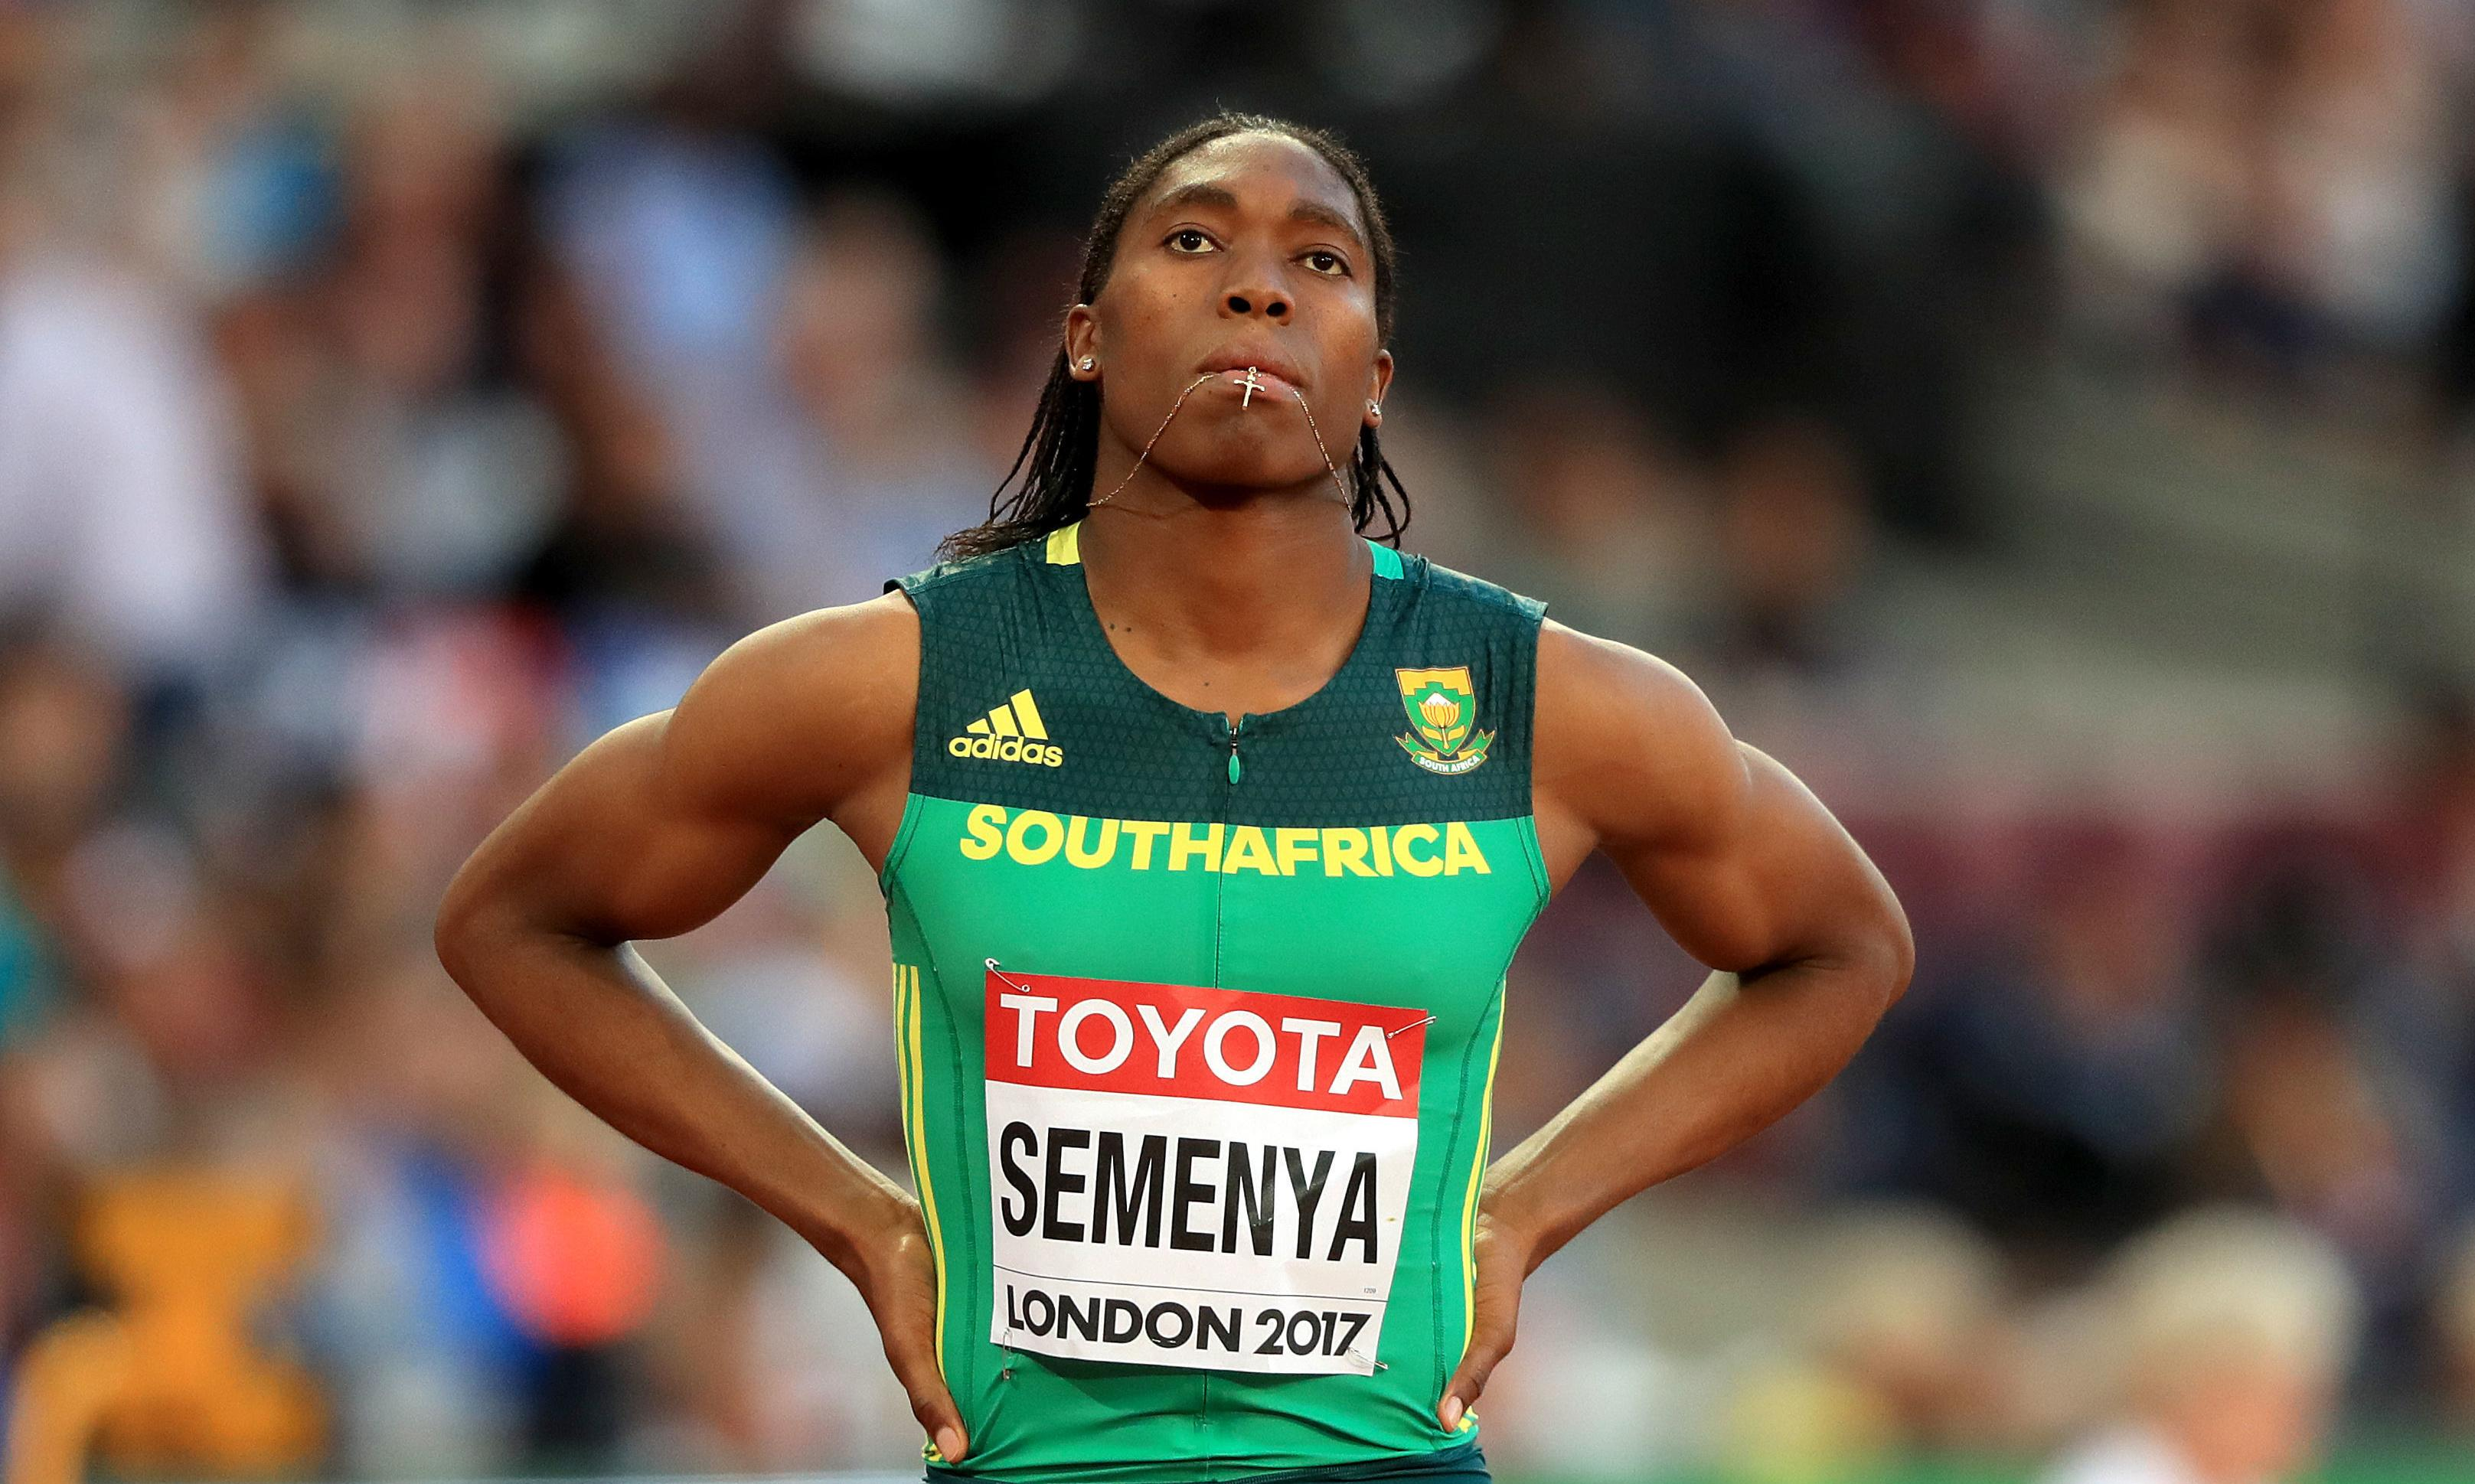 Caster Semenya accuses IAAF of using her as a 'guinea pig experiment'